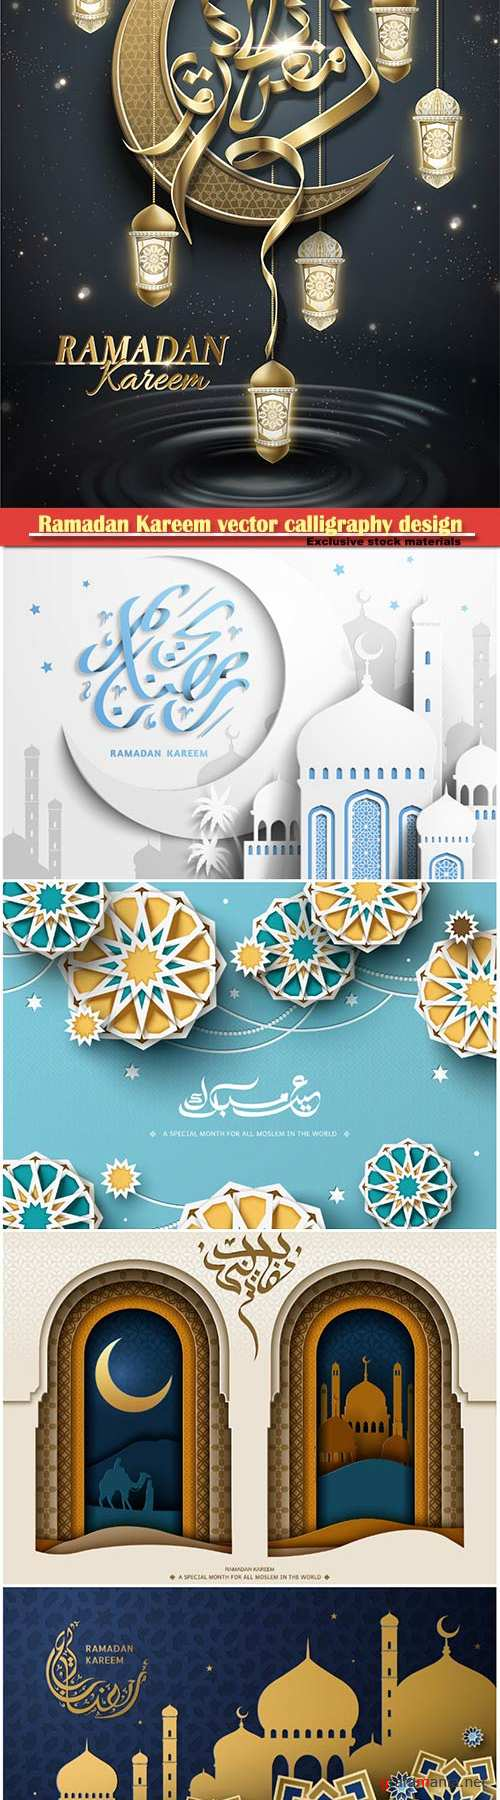 Ramadan Kareem vector calligraphy design with decorative floral pattern,mosque silhouette, crescent and glittering islamic background # 7